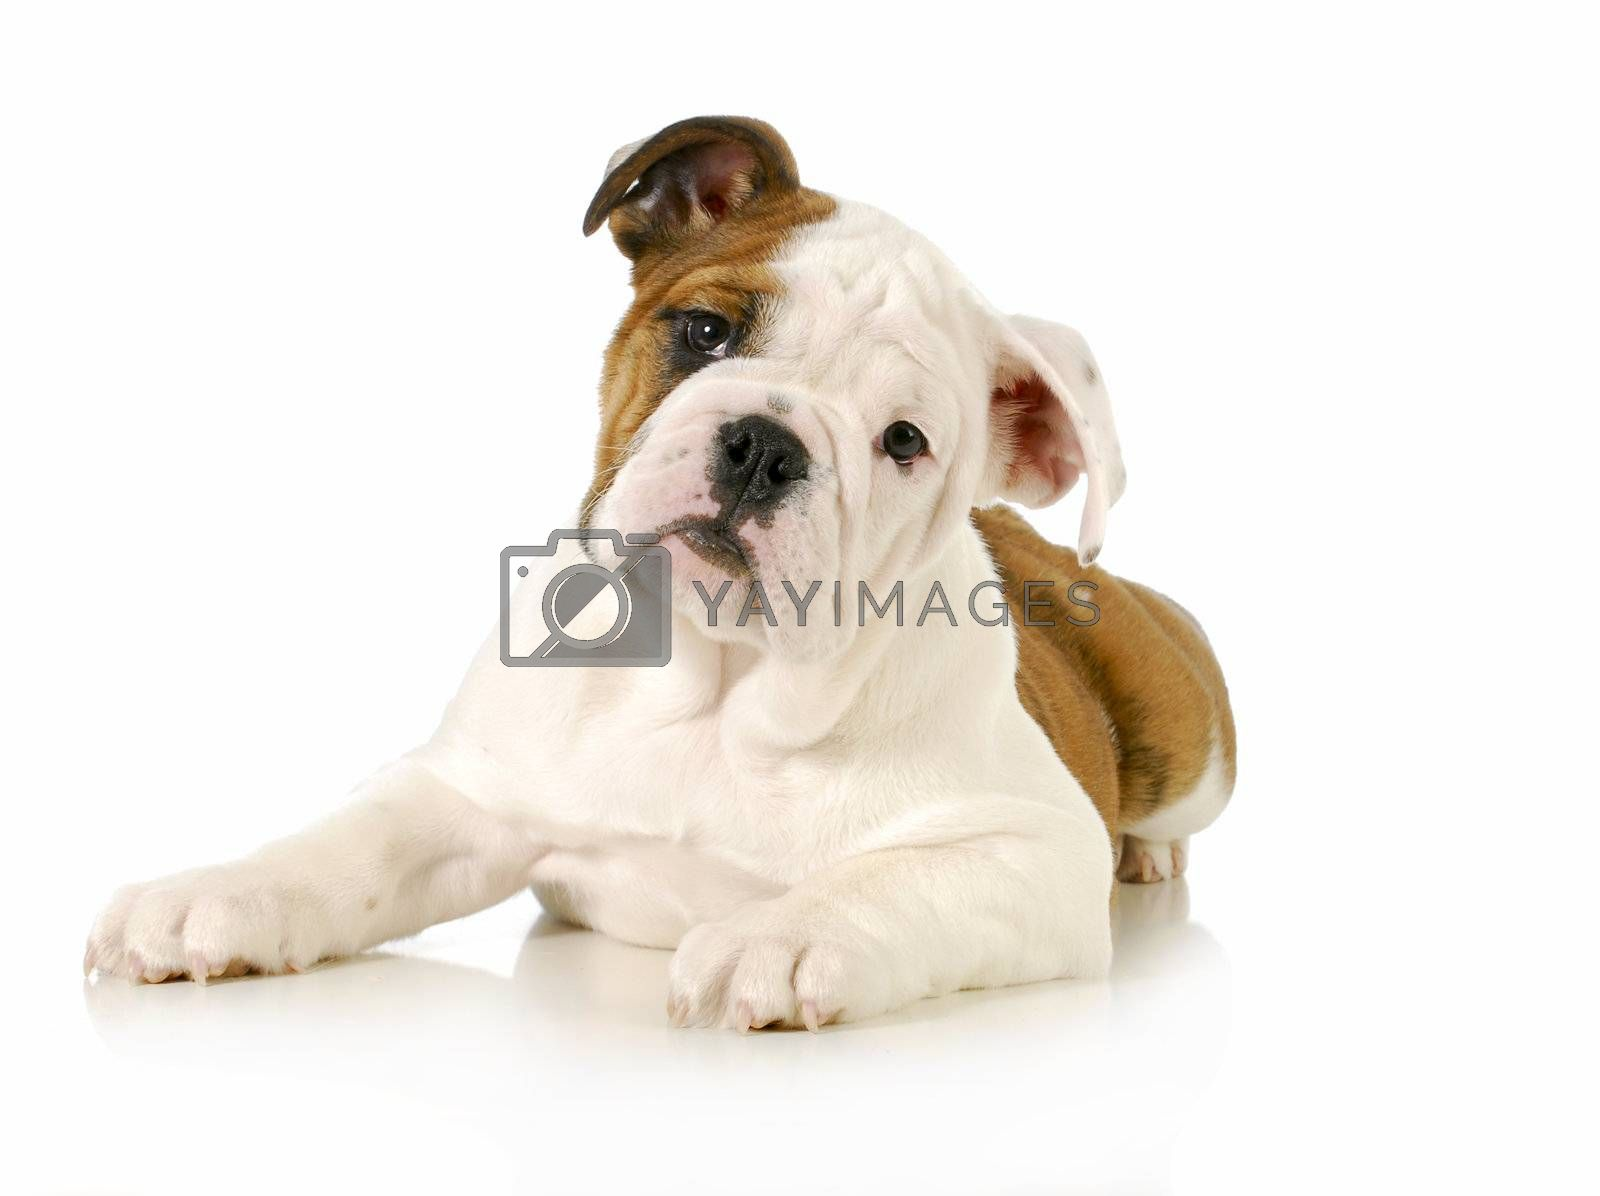 english bulldog puppy laying down looking at viewer on white background - 4 months old